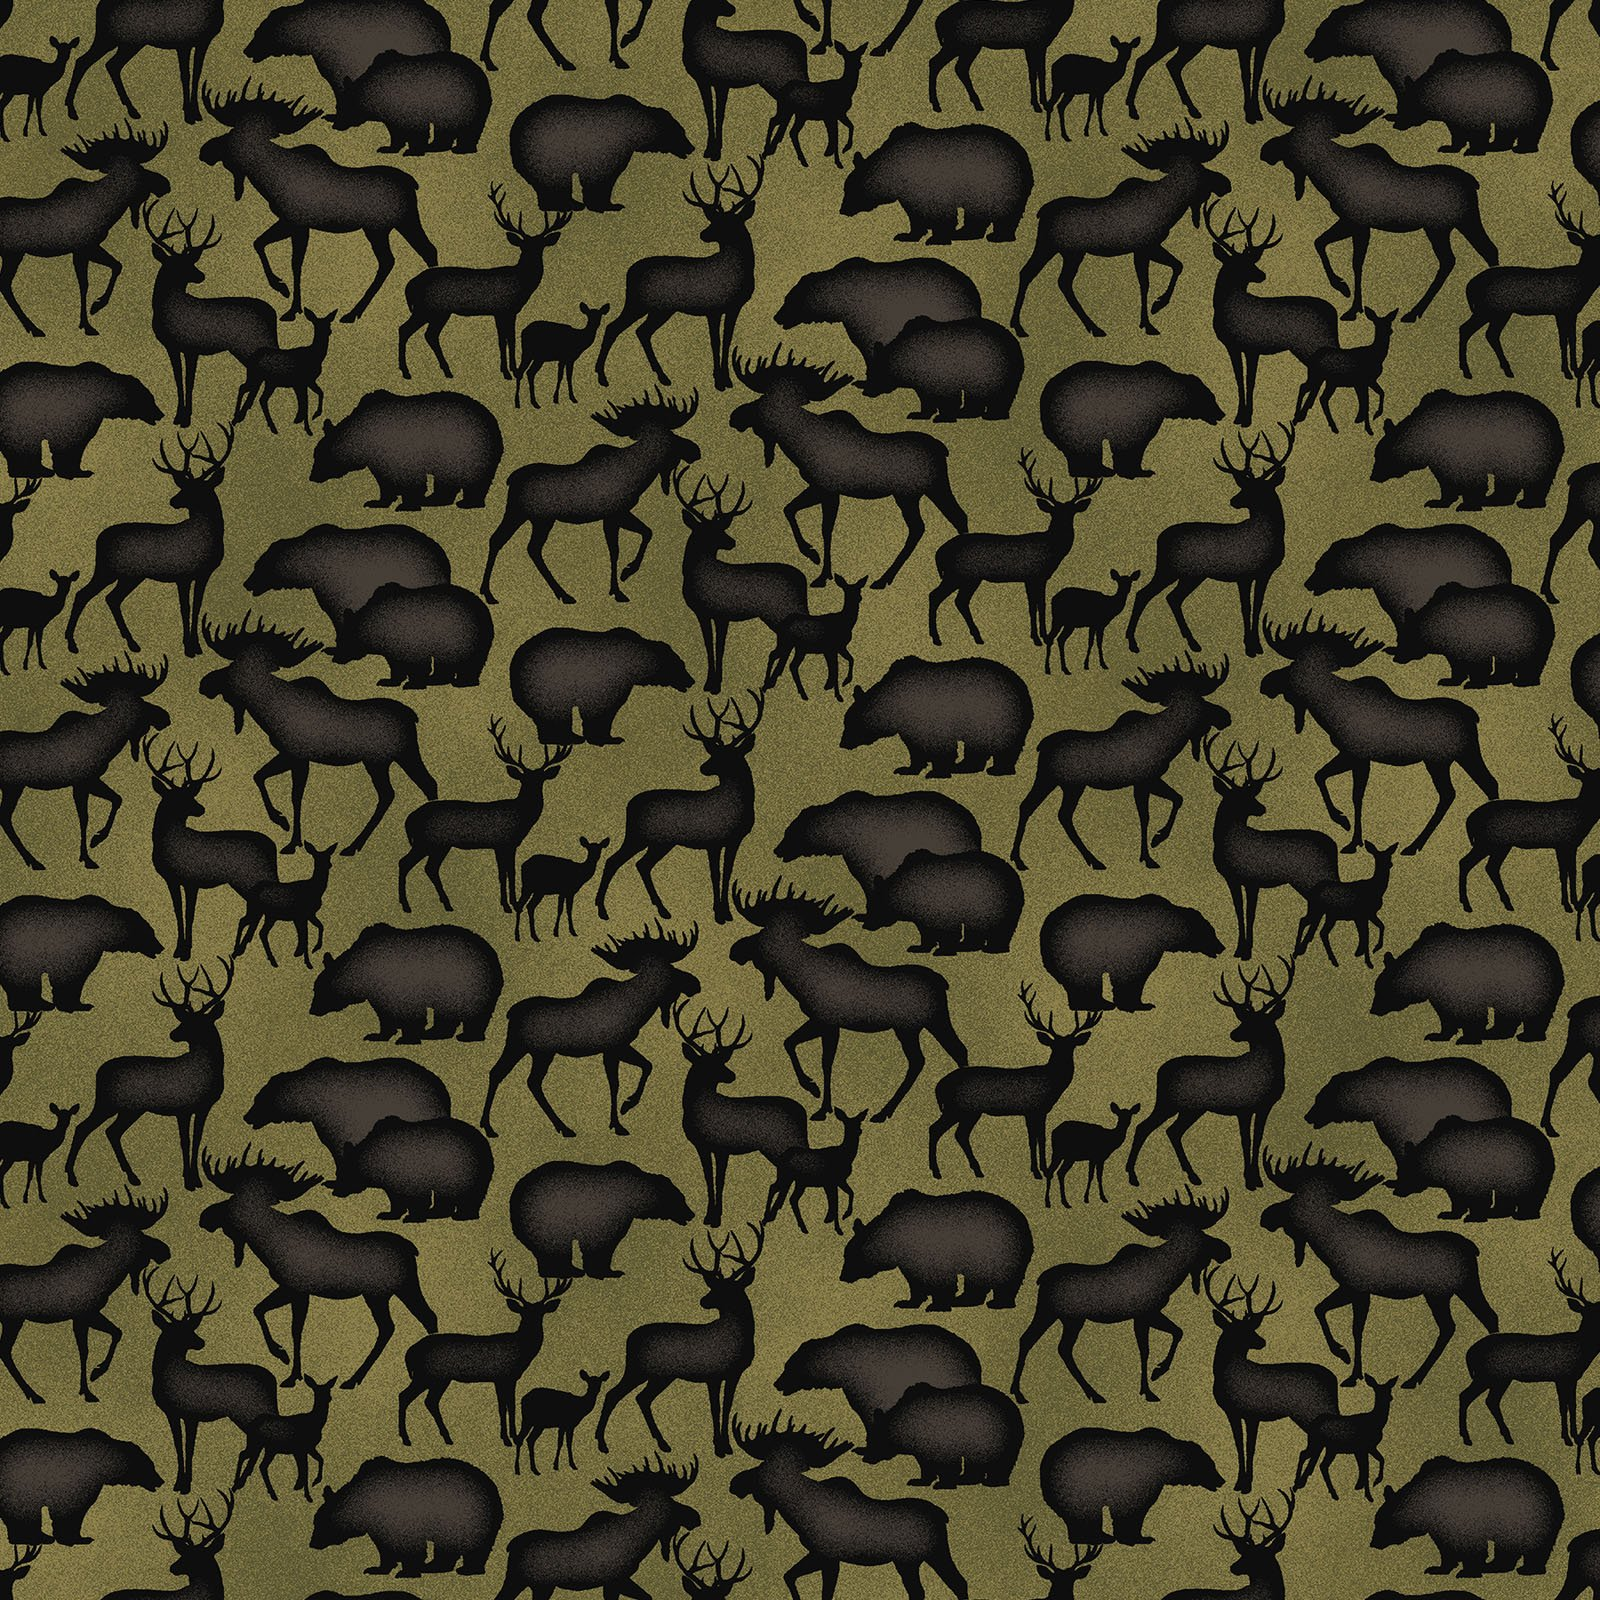 Animal Silhouettes Olive<br/>Benartex 219443